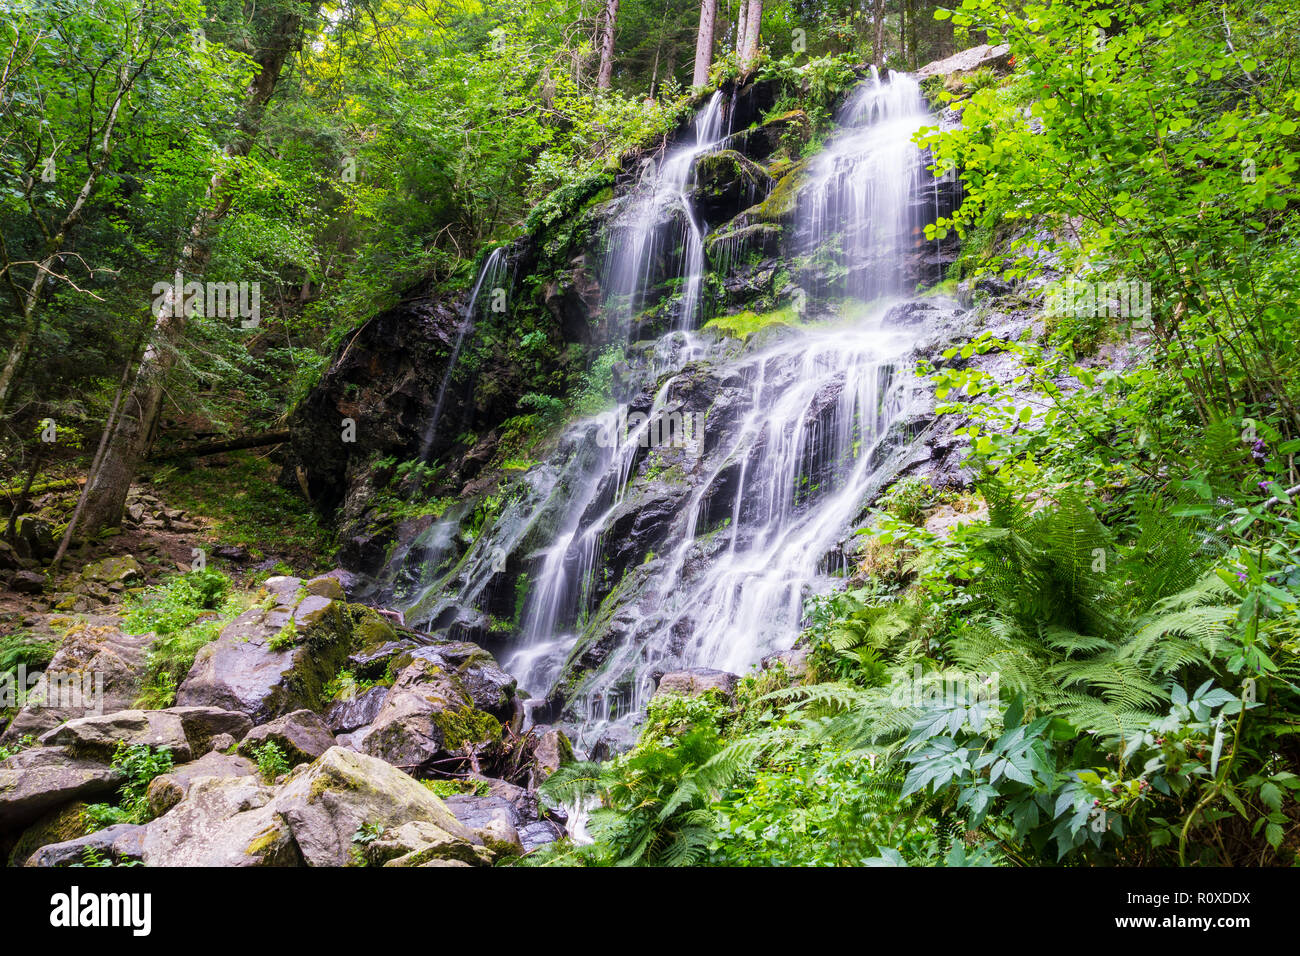 Germany, Holiday destination Zweribach waterfall in black forest region - Stock Image